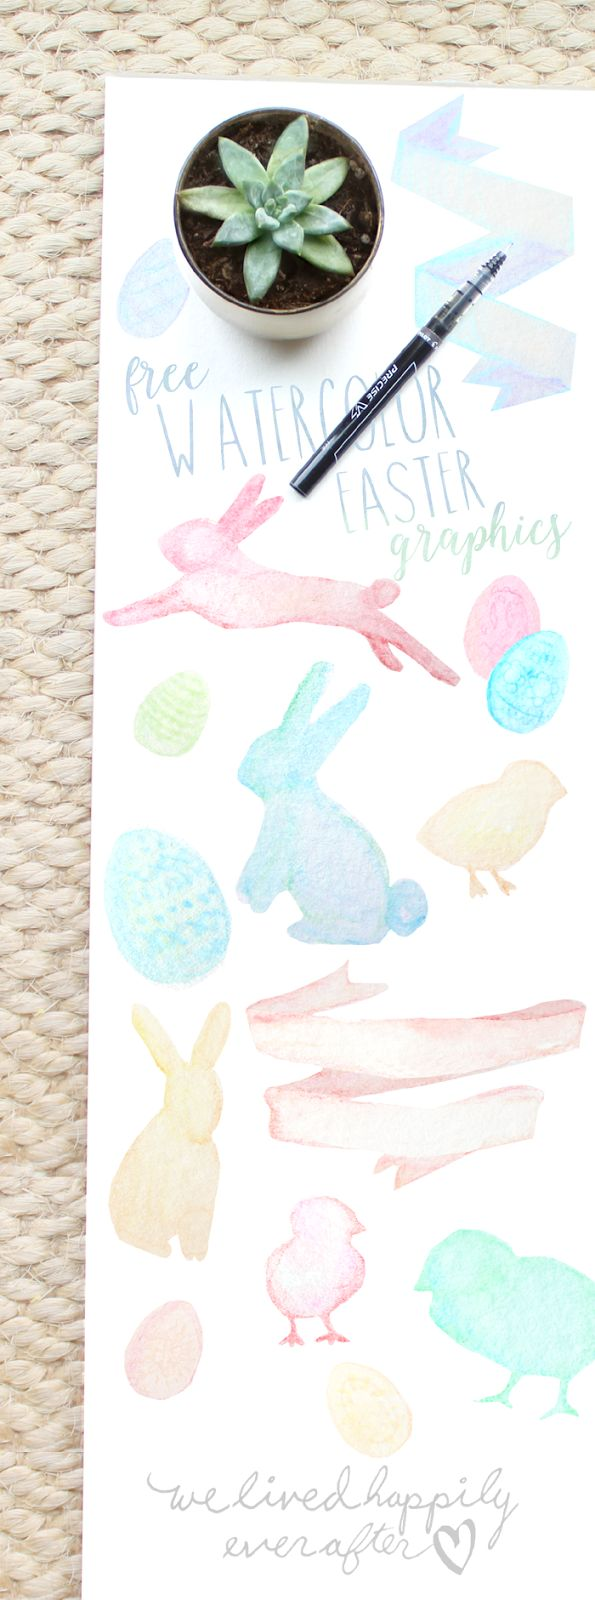 Free Watercolor Easter Graphics